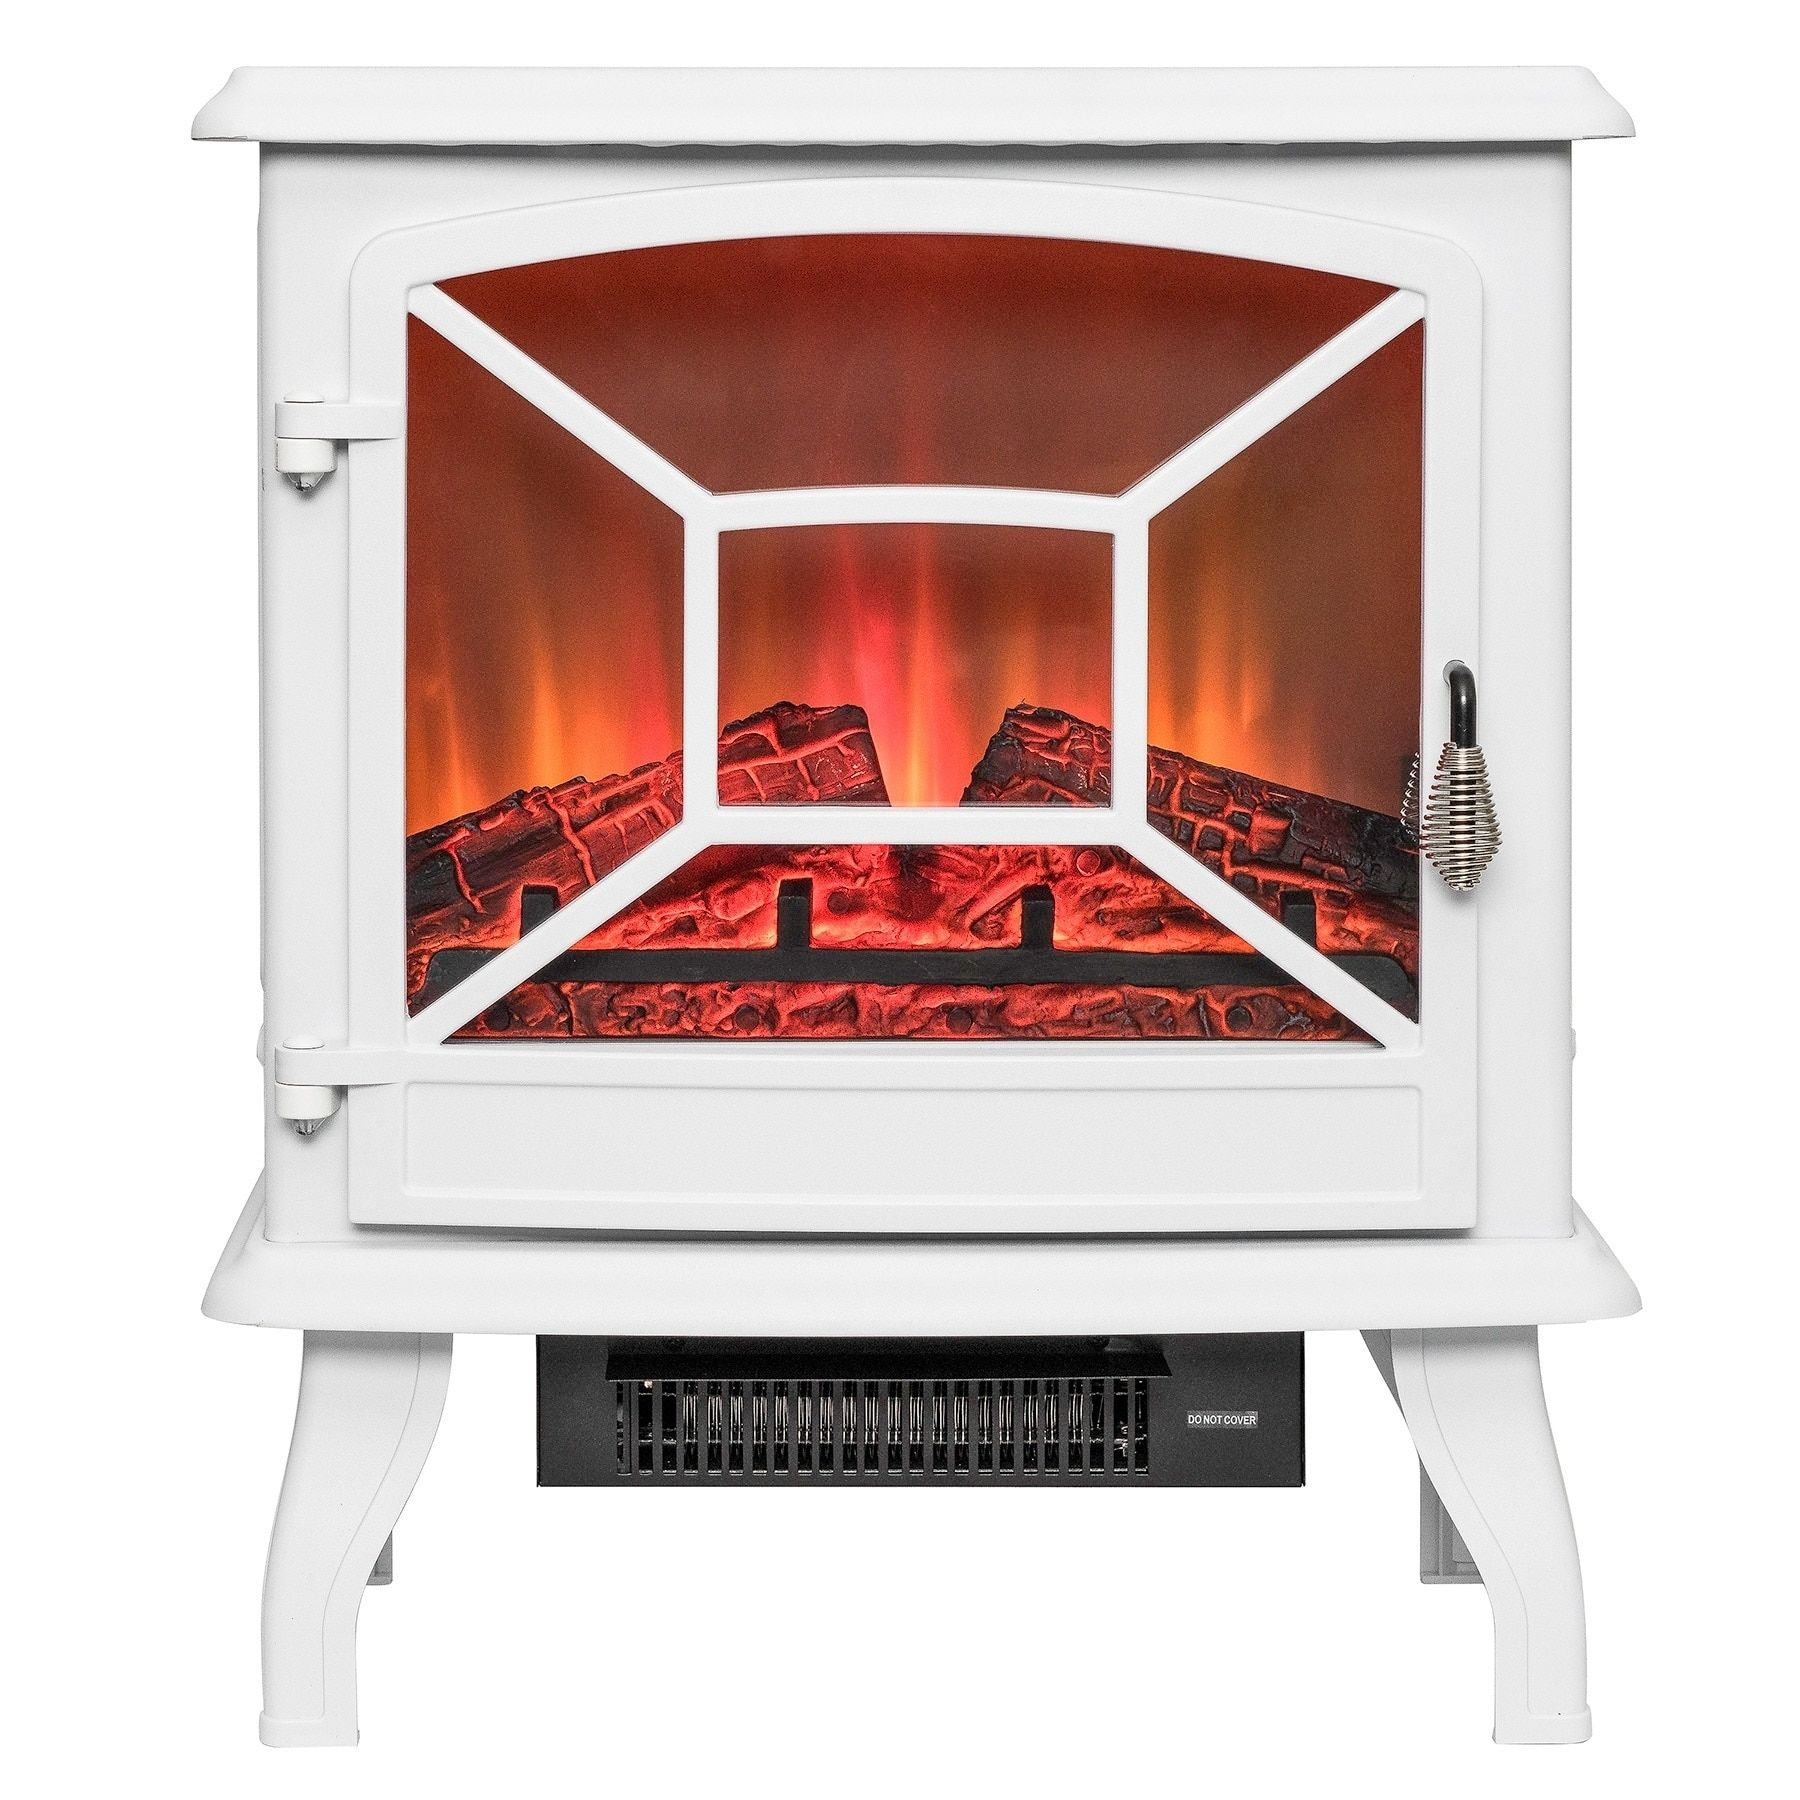 236a76dc1e7393893adad3c4eeb2328b Top Result 50 Awesome Corner Electric Fireplace Pic 2018 Jdt4